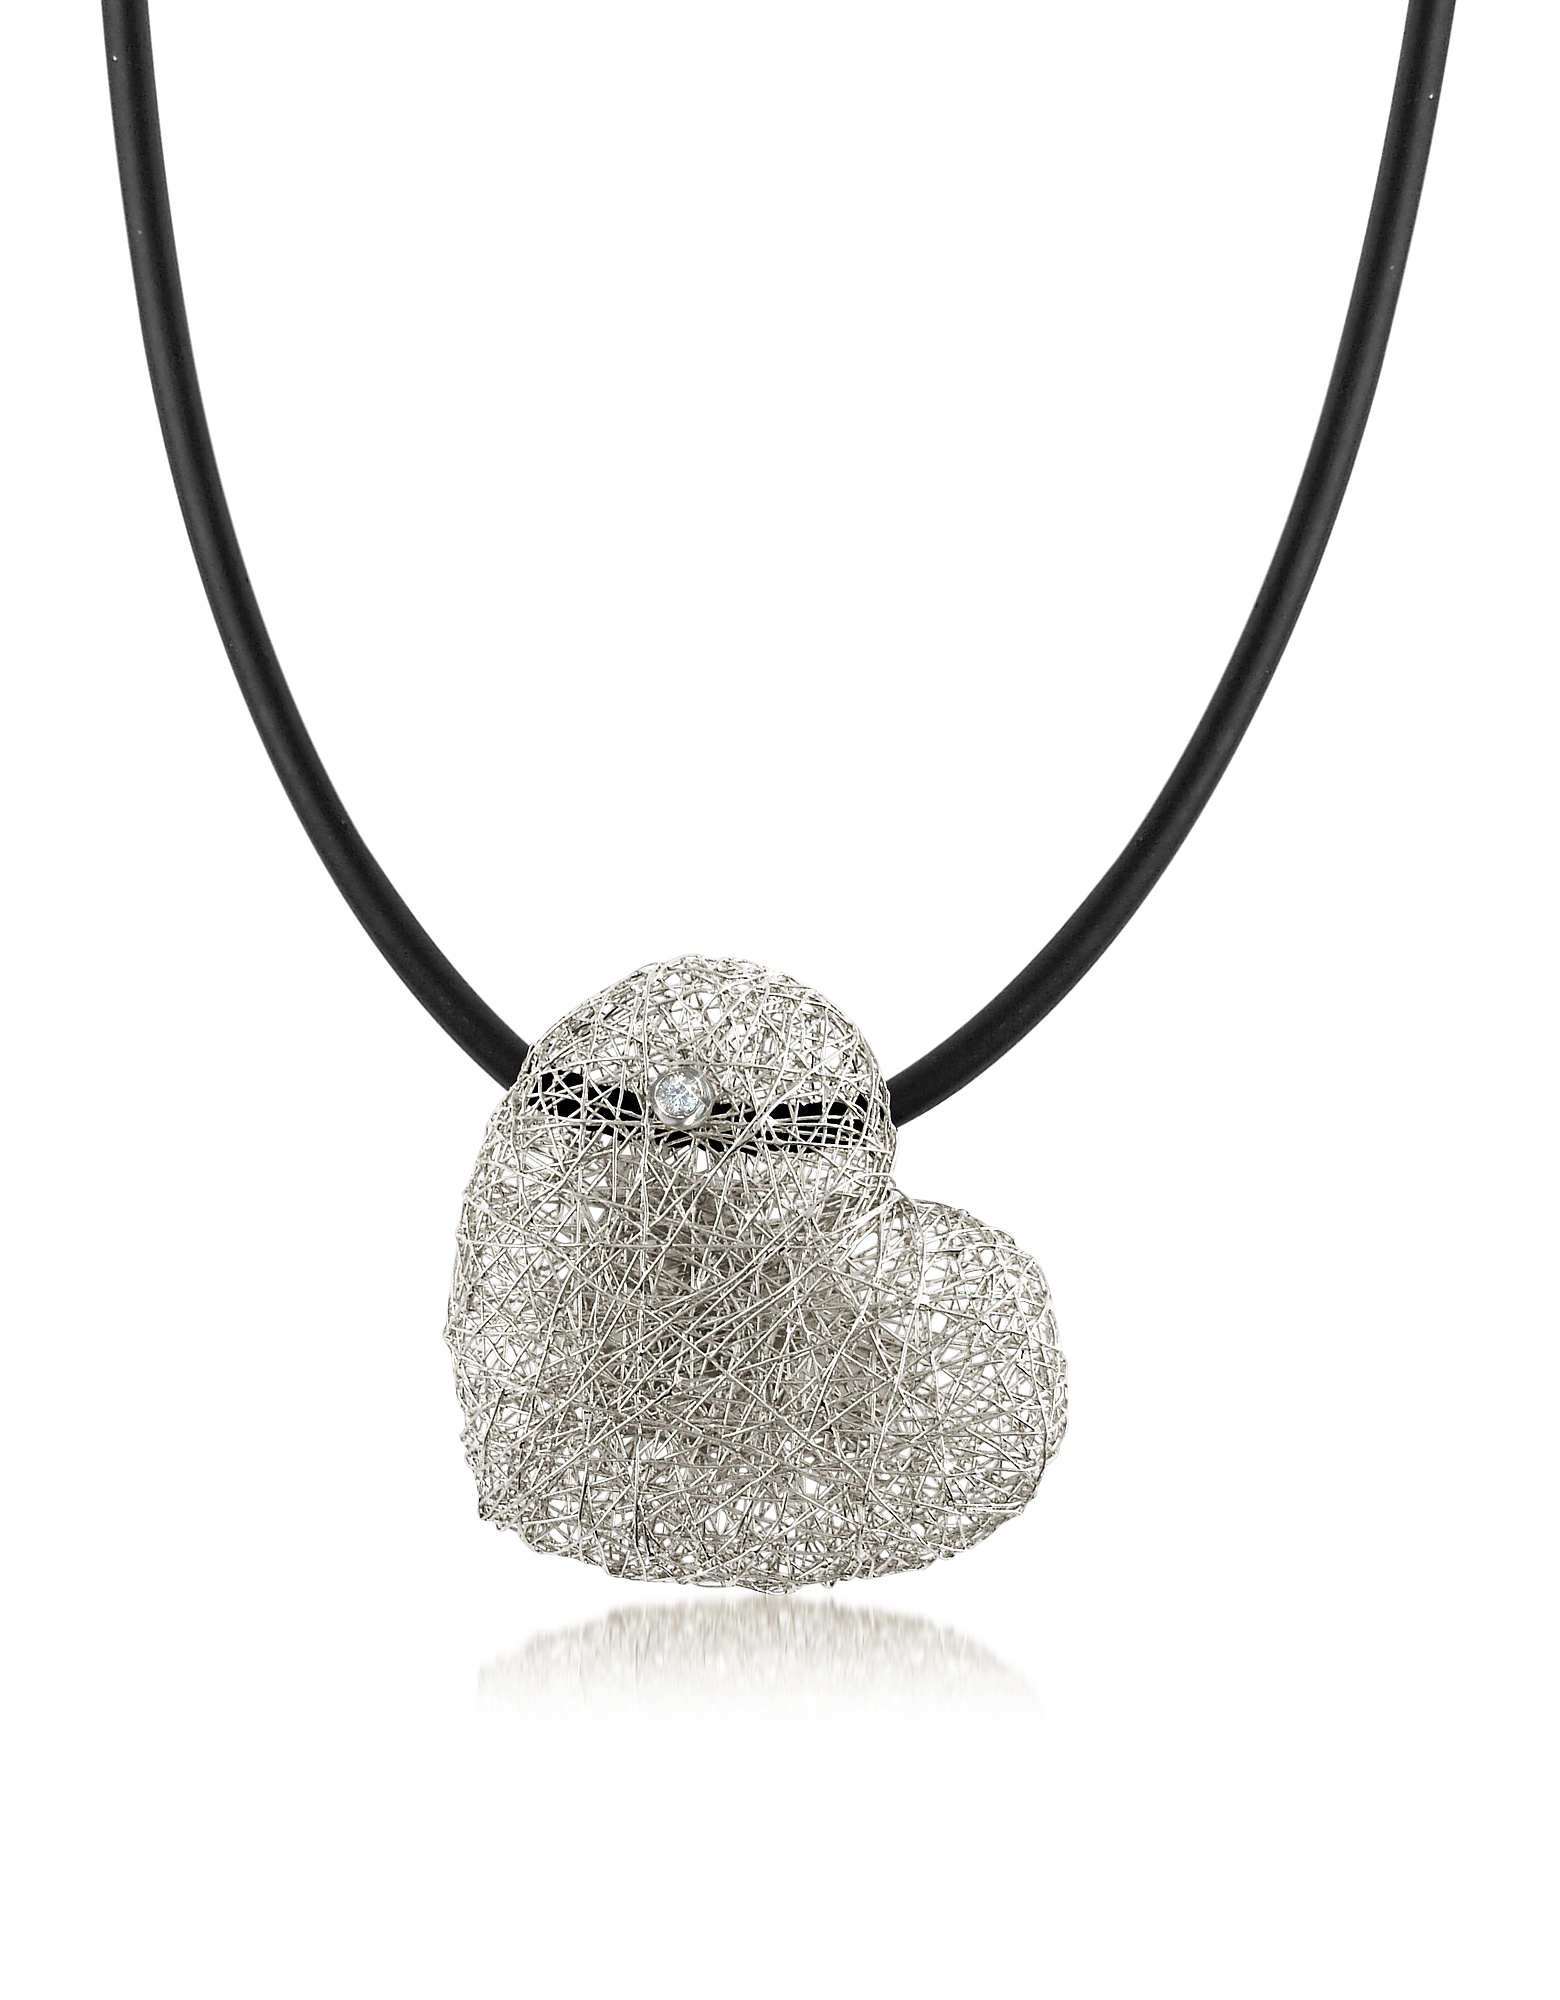 Orlando Orlandini Necklaces, Woven White Gold Heart Pendant Necklace w/Diamond